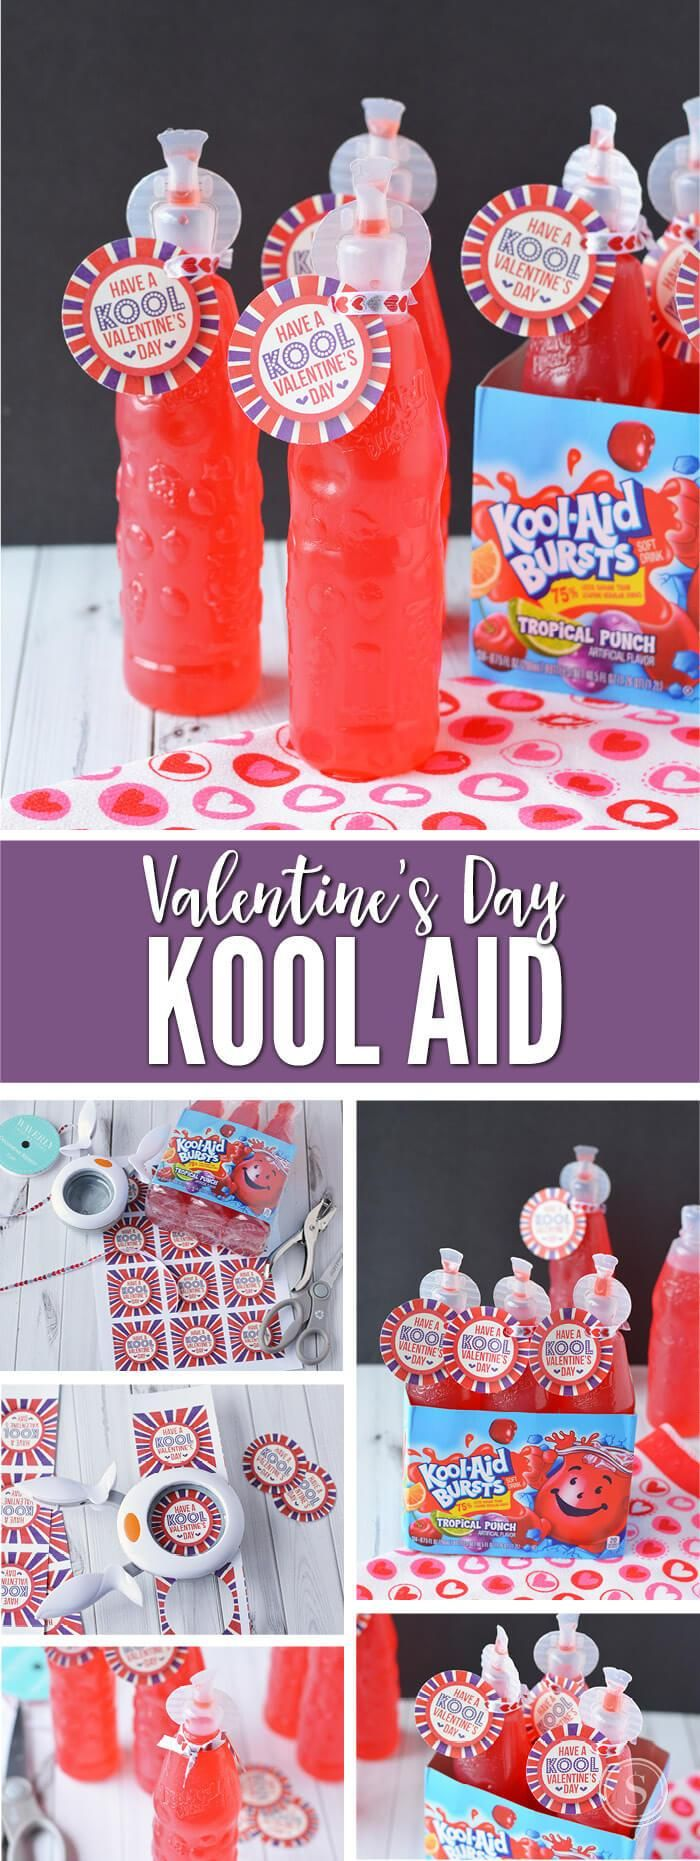 Every kid loves the sweet and tasty Kool-Aid juices! These Valentine's Day gifts are great for classrooms, where prepackaged foods are a must due to allergies and where kids need a drink after diving into all those sweet treats!